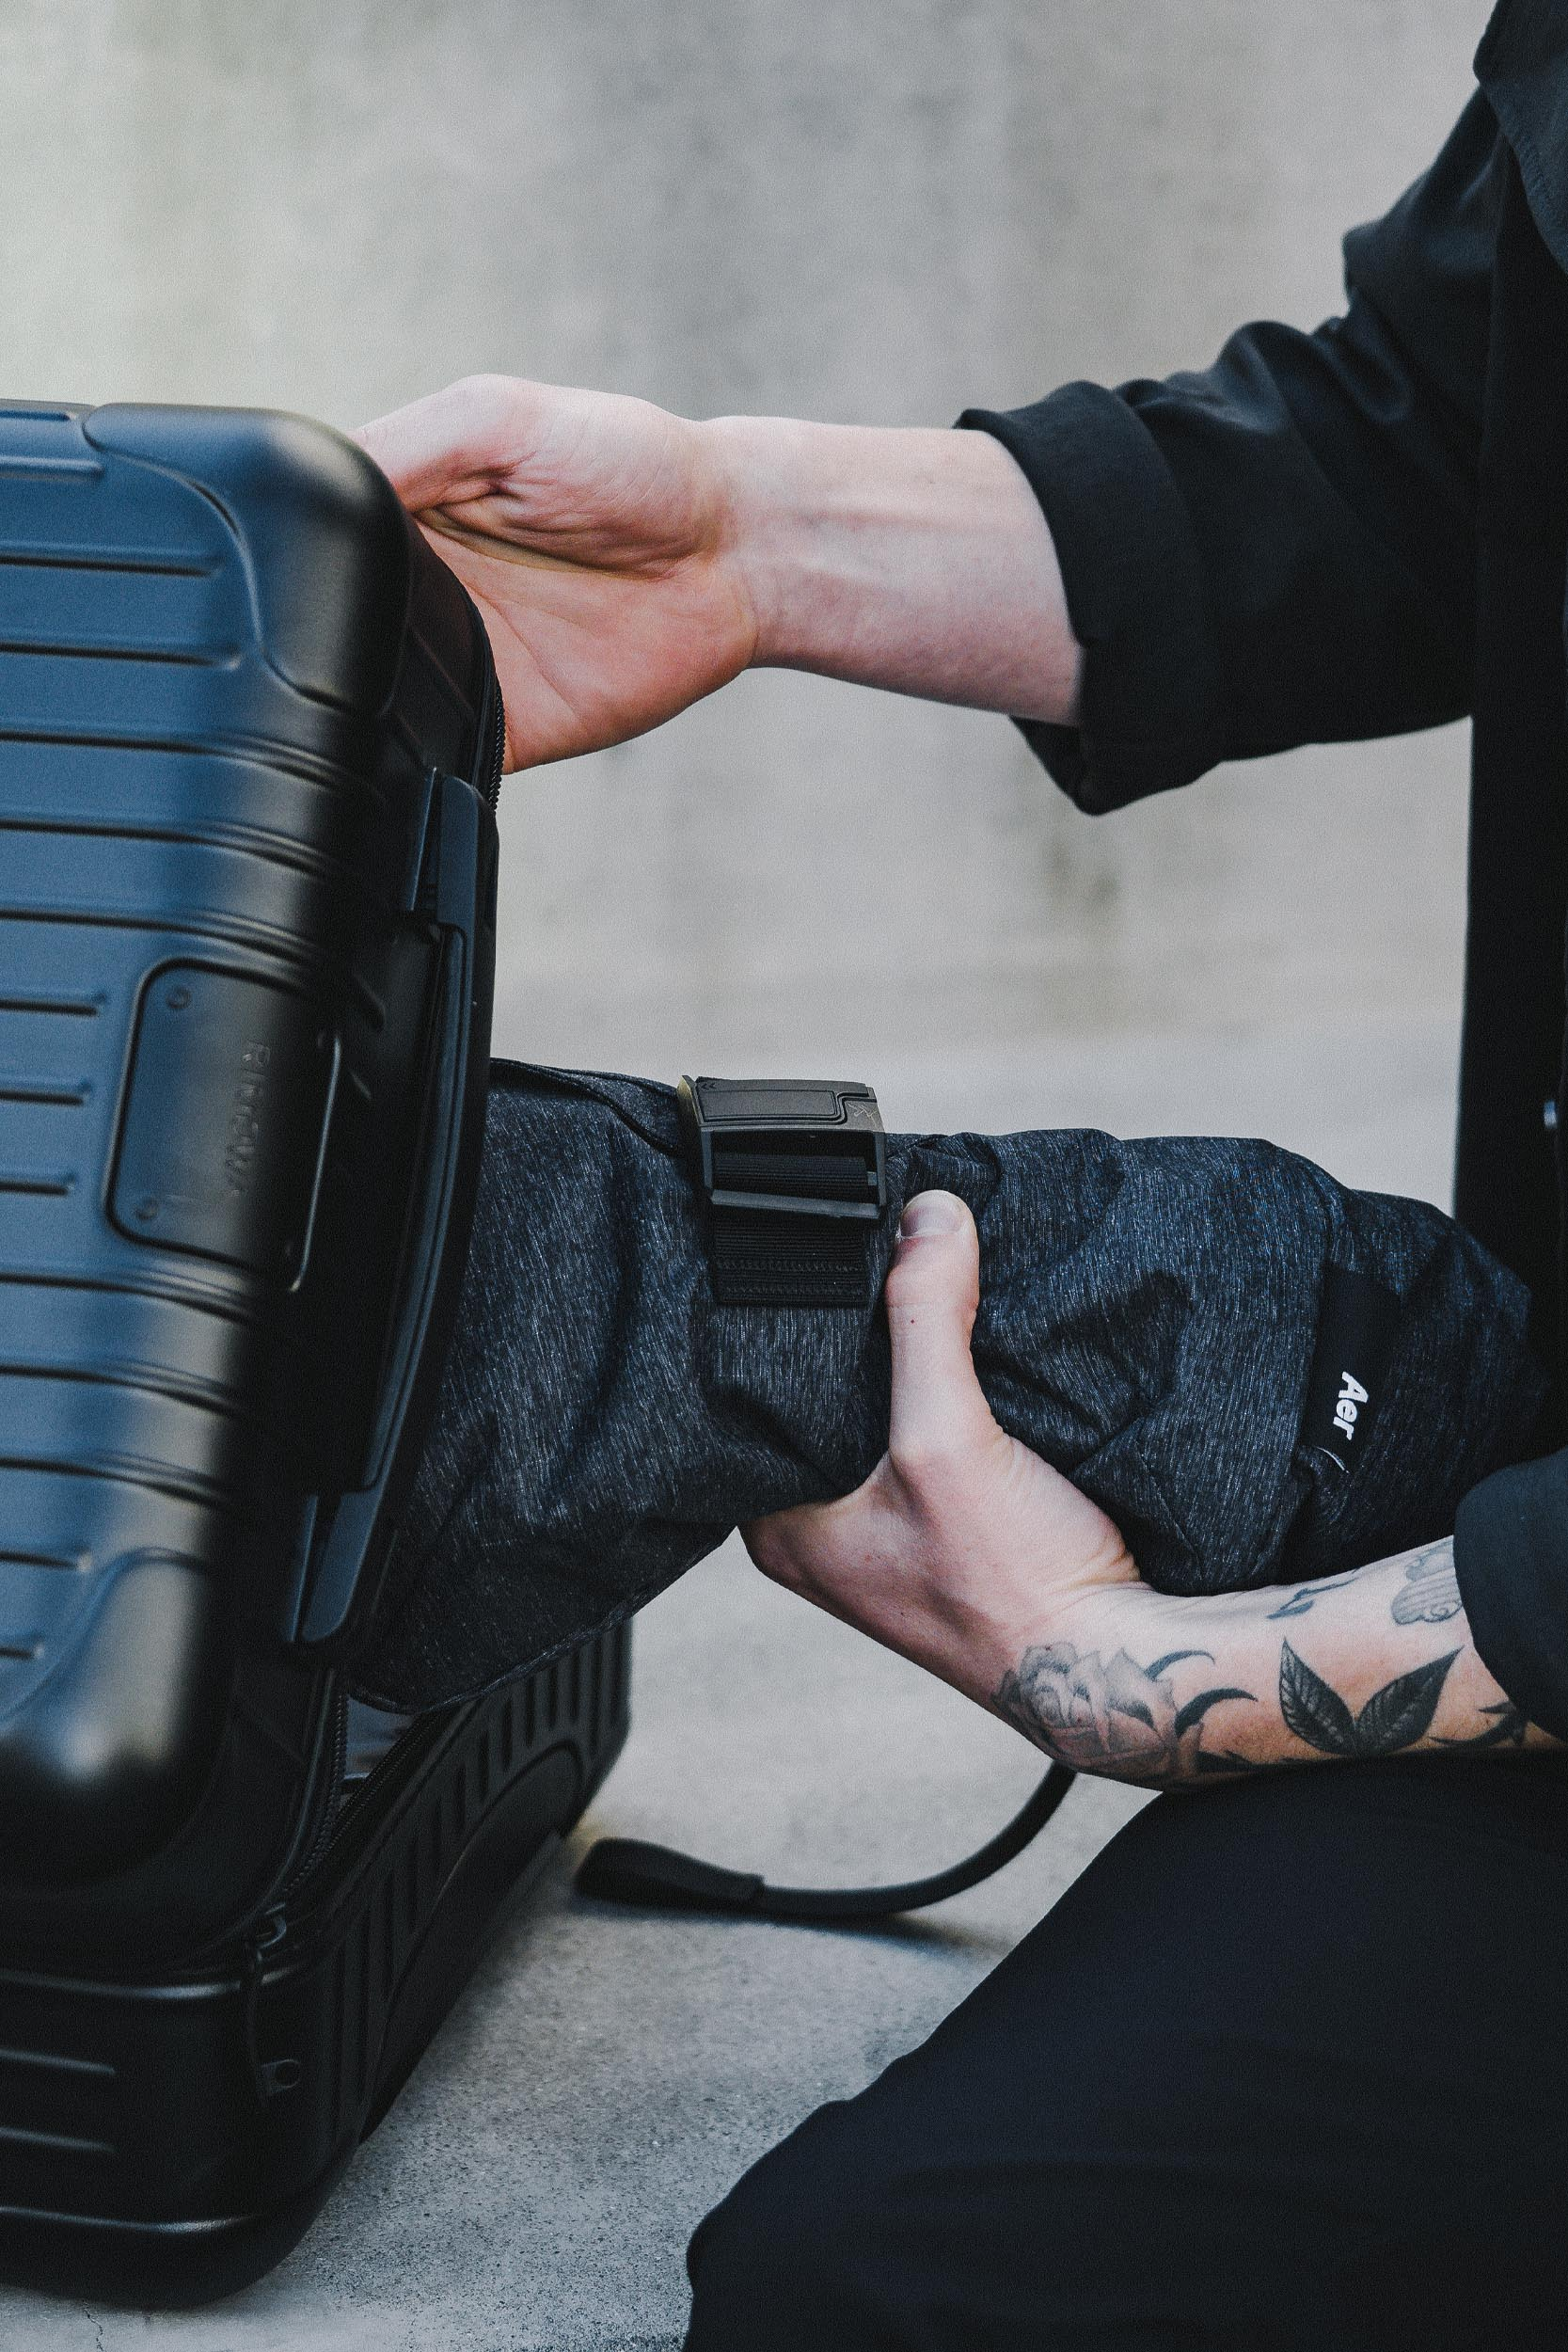 Each bag can be rolled up or packed flat inside larger luggage.